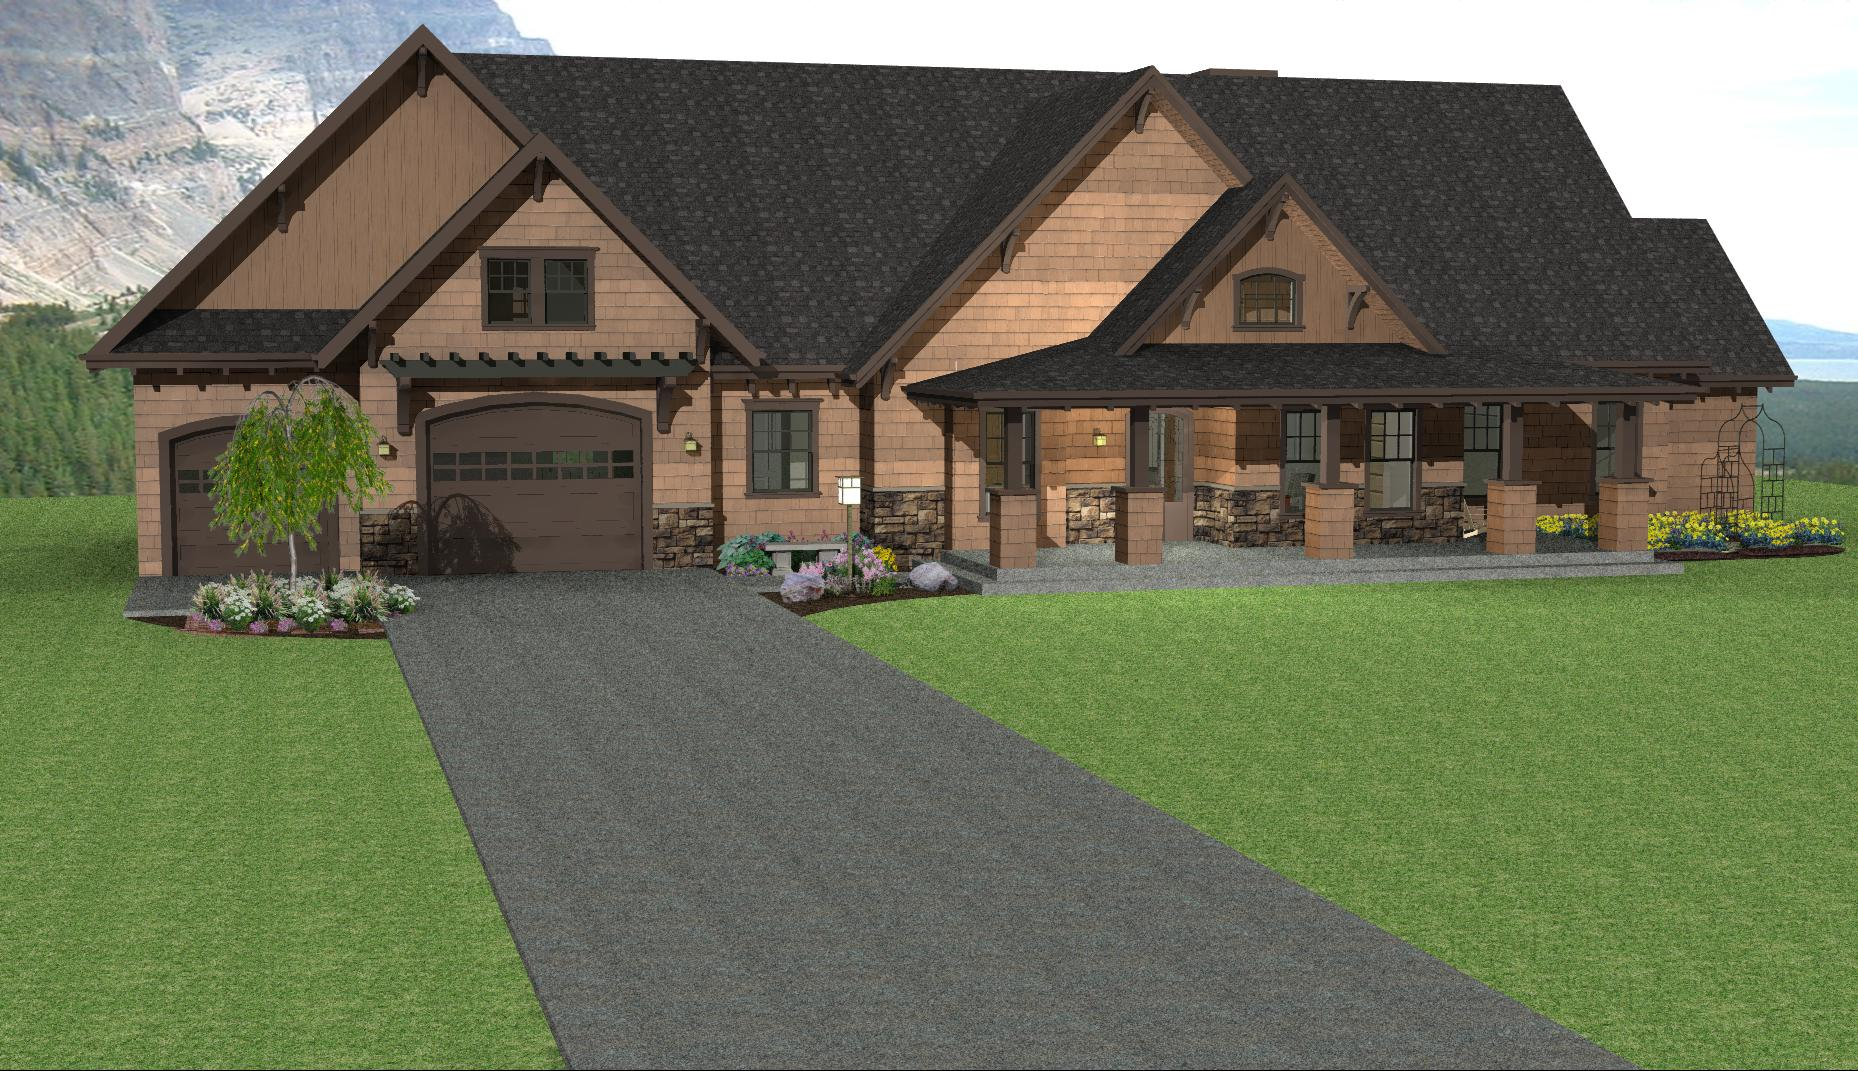 Ranch style home designs find house plans Ranch style house plans